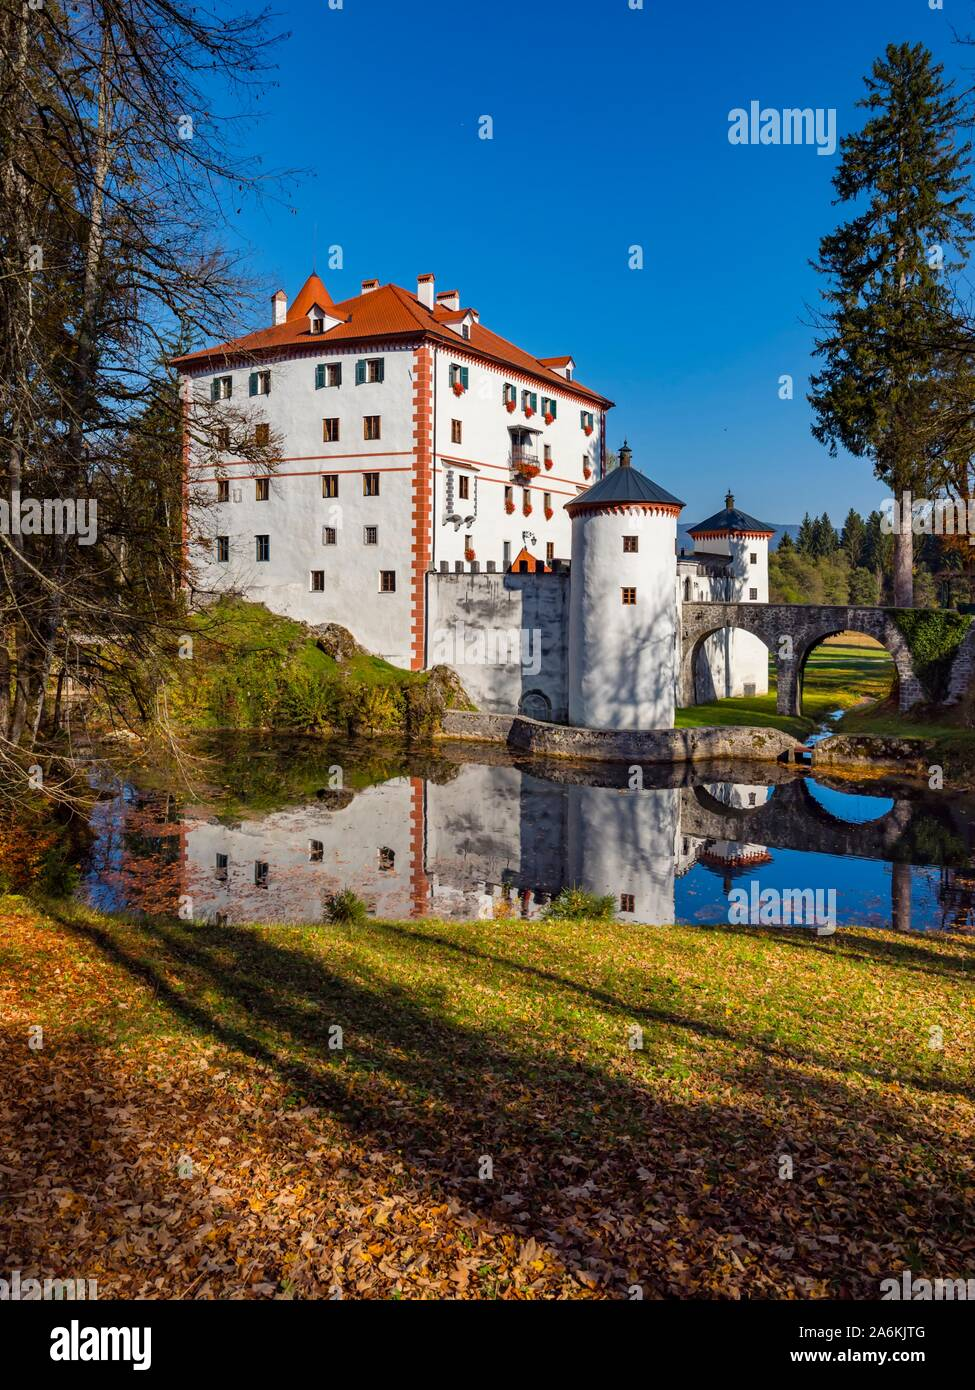 Sneznik castle in Slovenia forest trees vegetation calm reflection mirror image peaceful quiet lake Stock Photo